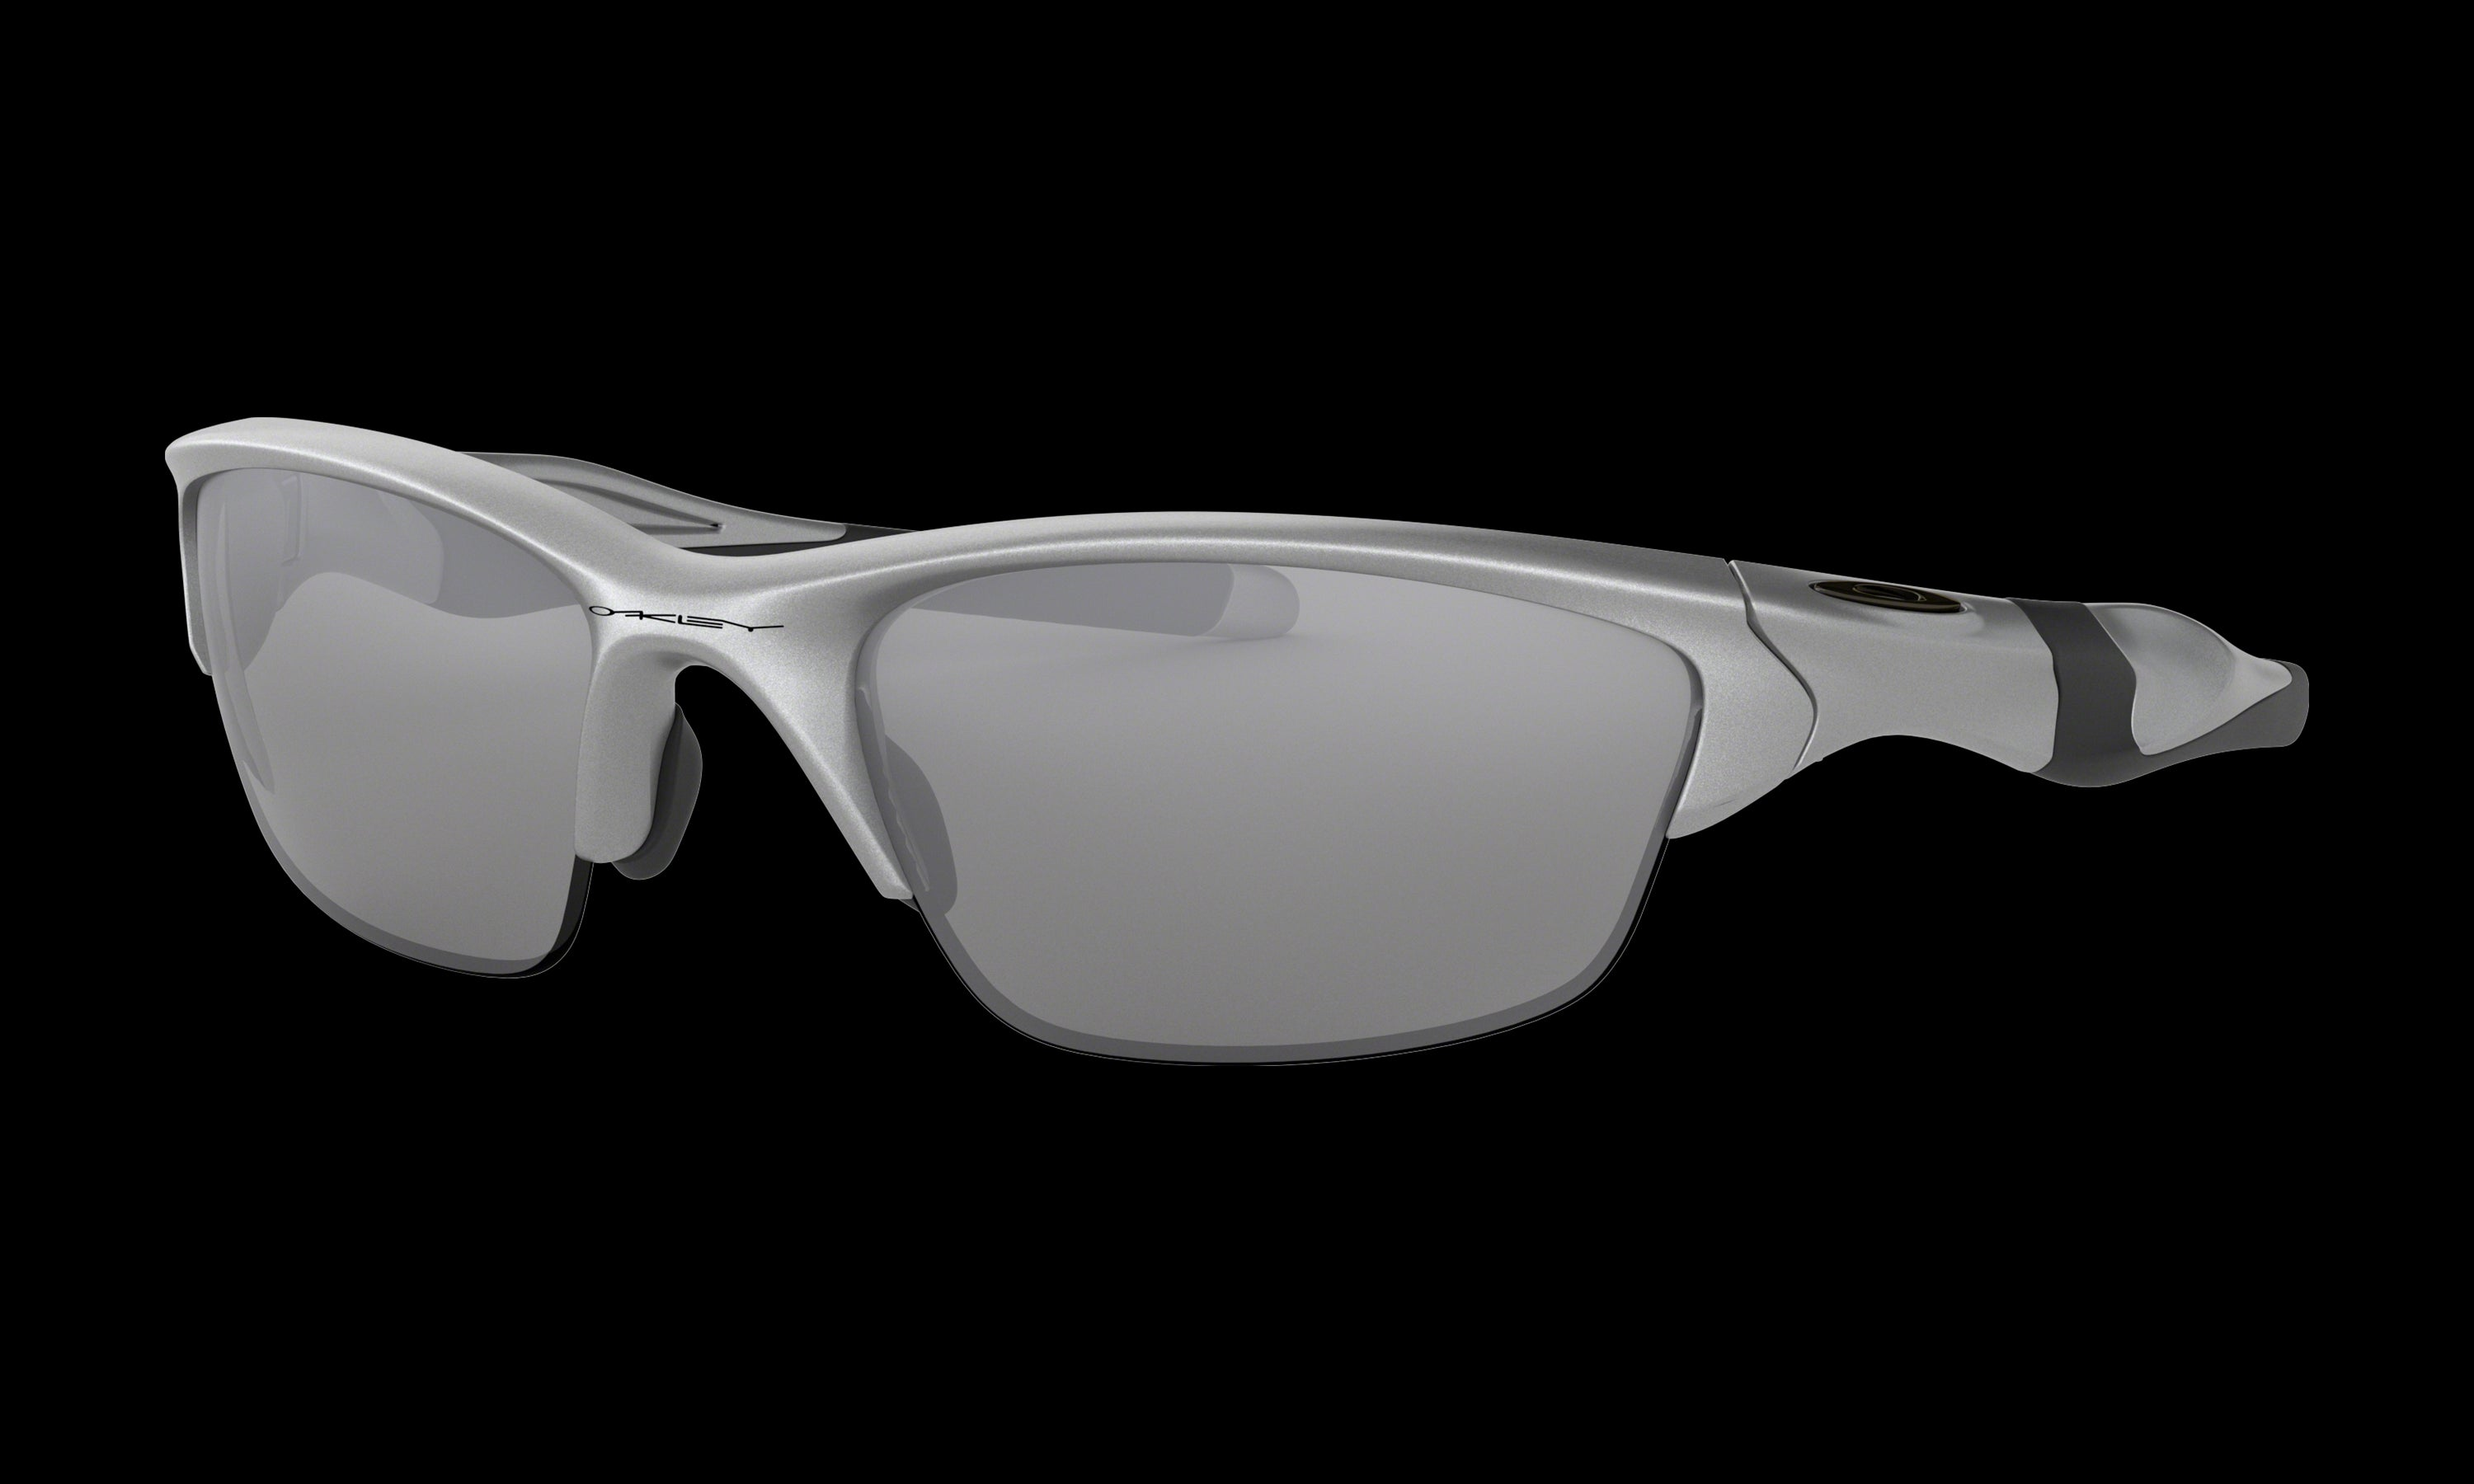 Men's Oakley Half Jacket 2.0 (Asia Fit) Sunglasses in Silver Slate Iridium